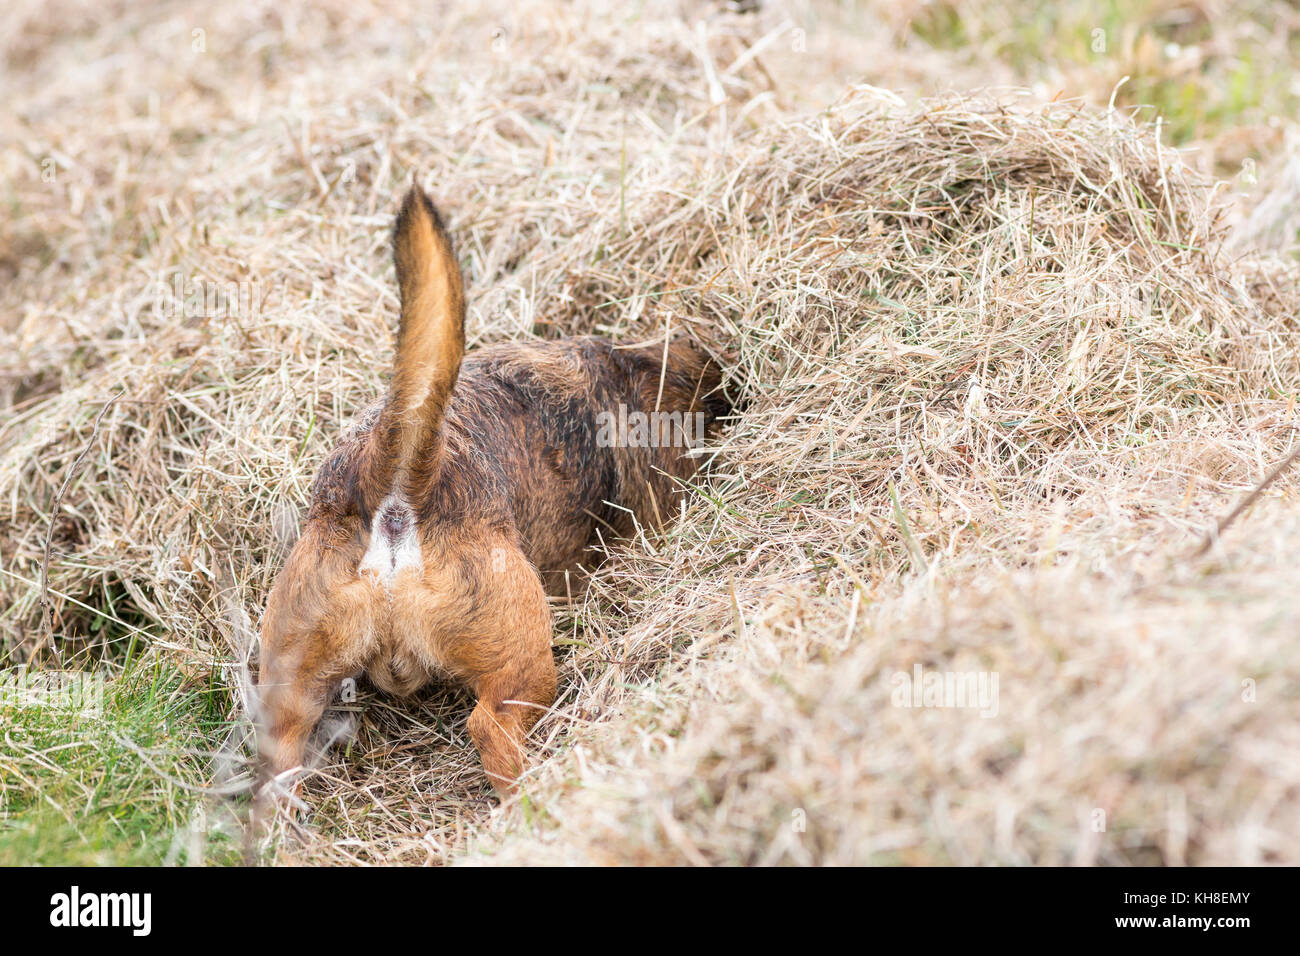 Border terrier dog hunting with head buried in hay - Stock Image